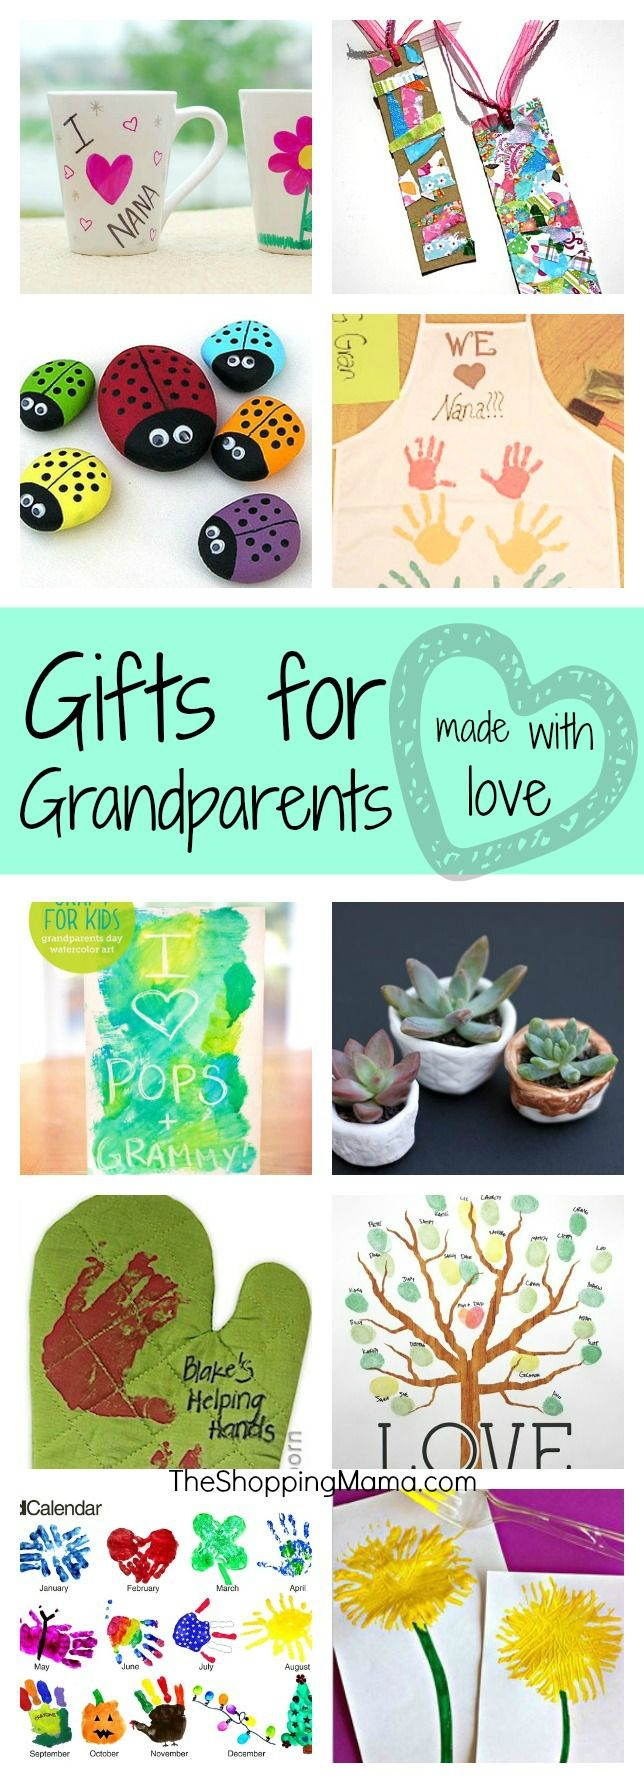 best fatherus motherus u grandparents day images on pinterest